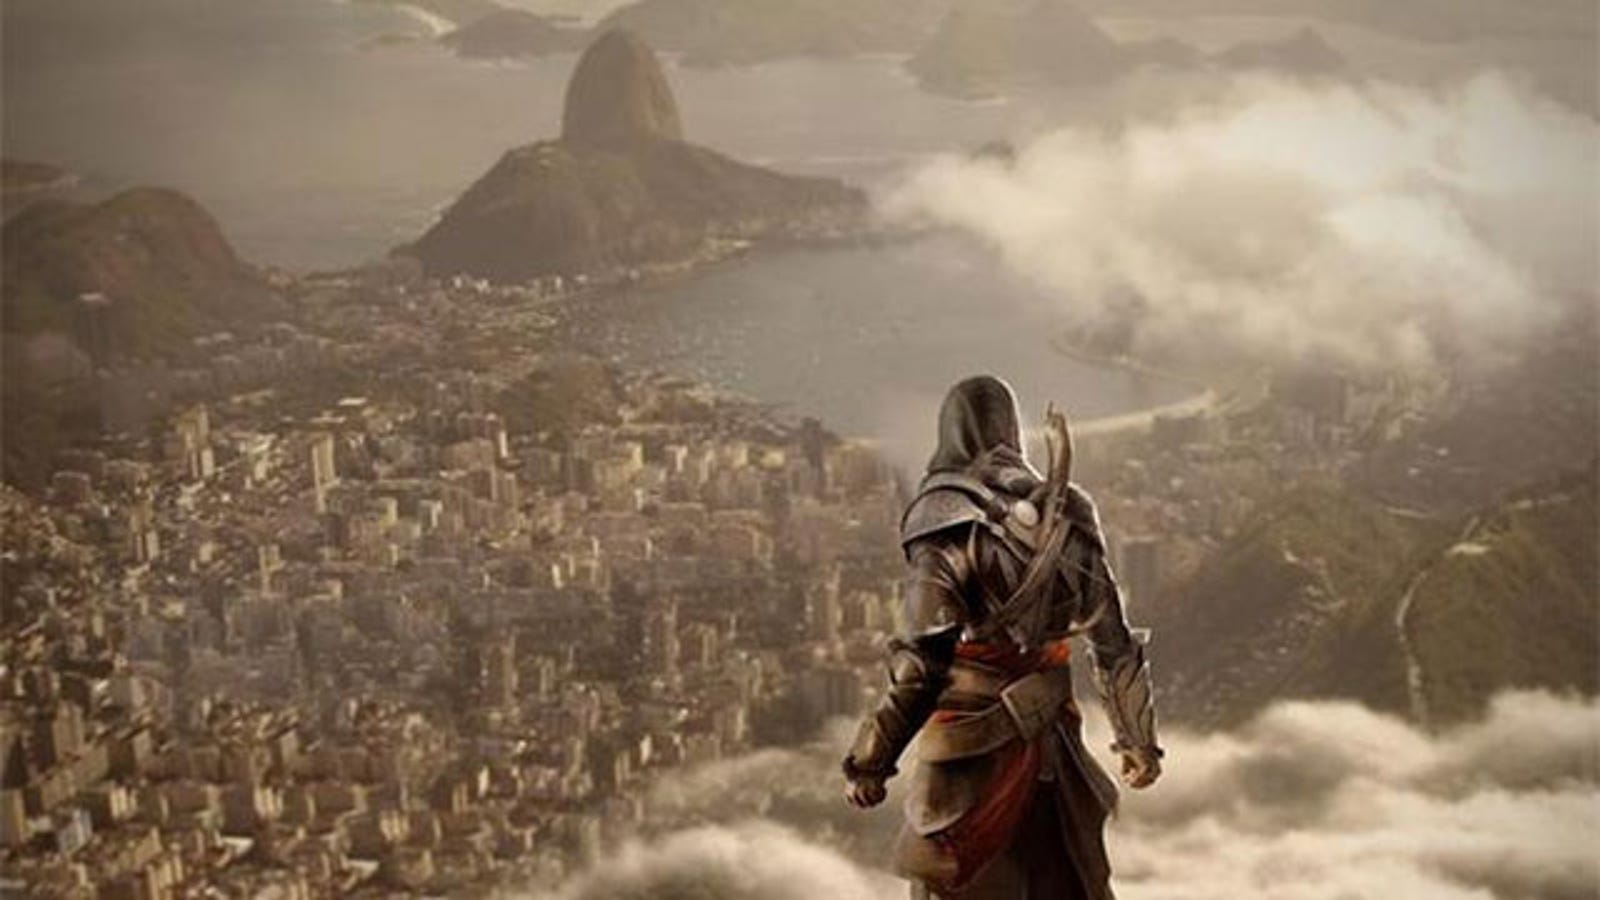 The Next Assassin's Creed Game Will Be Set In... Brazil?